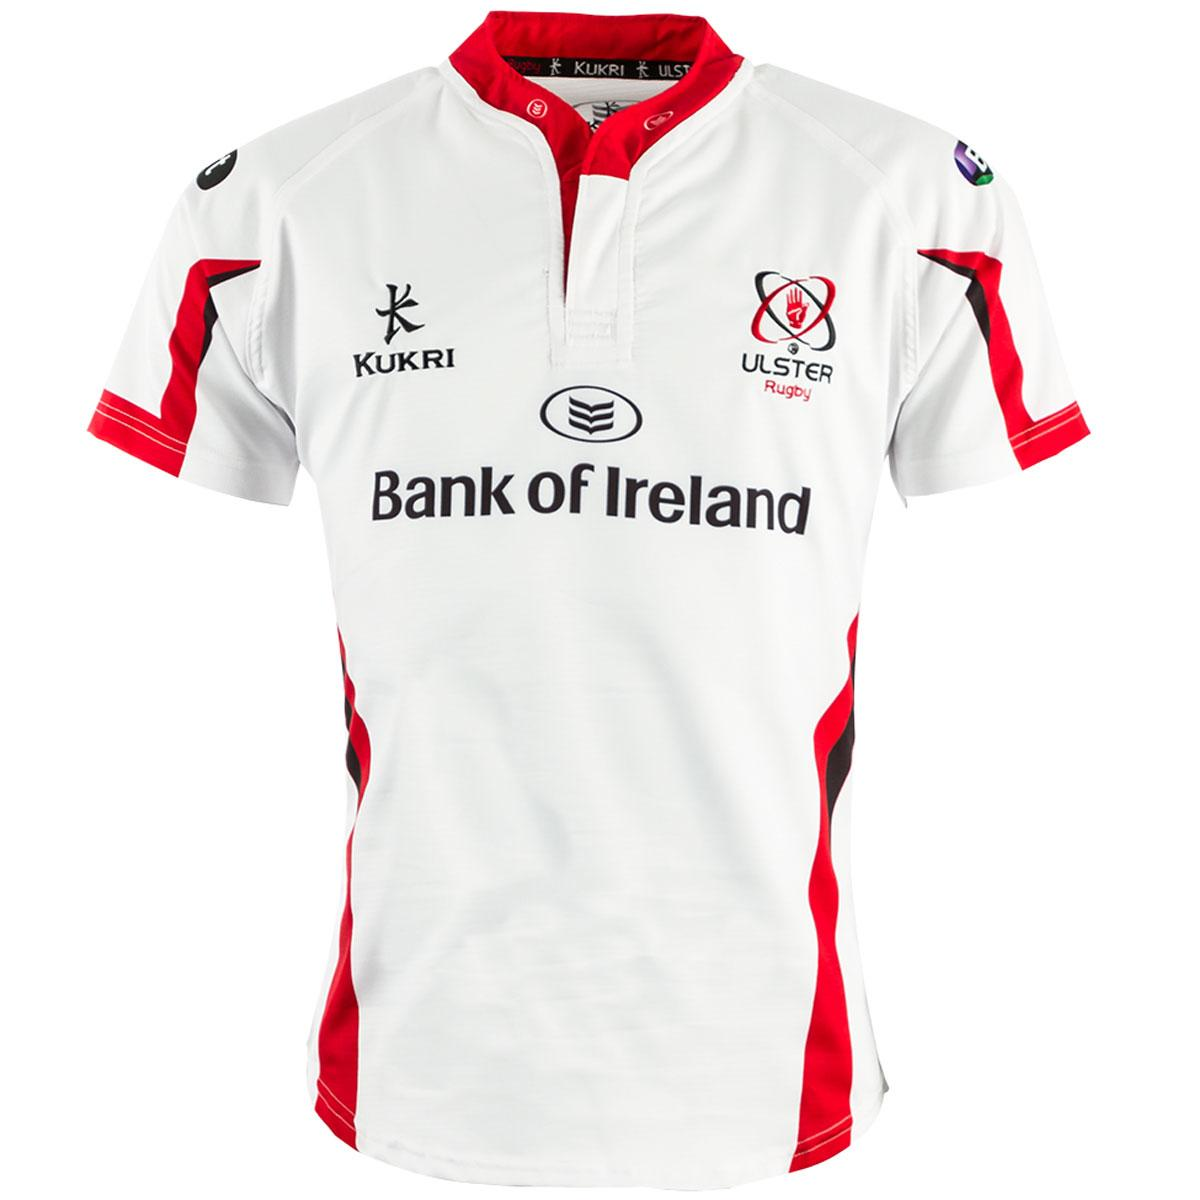 dc6f26f889a Ulster Rugby 2014/15 Kukri Home & Alternate Shirts – Rugby Shirt Watch